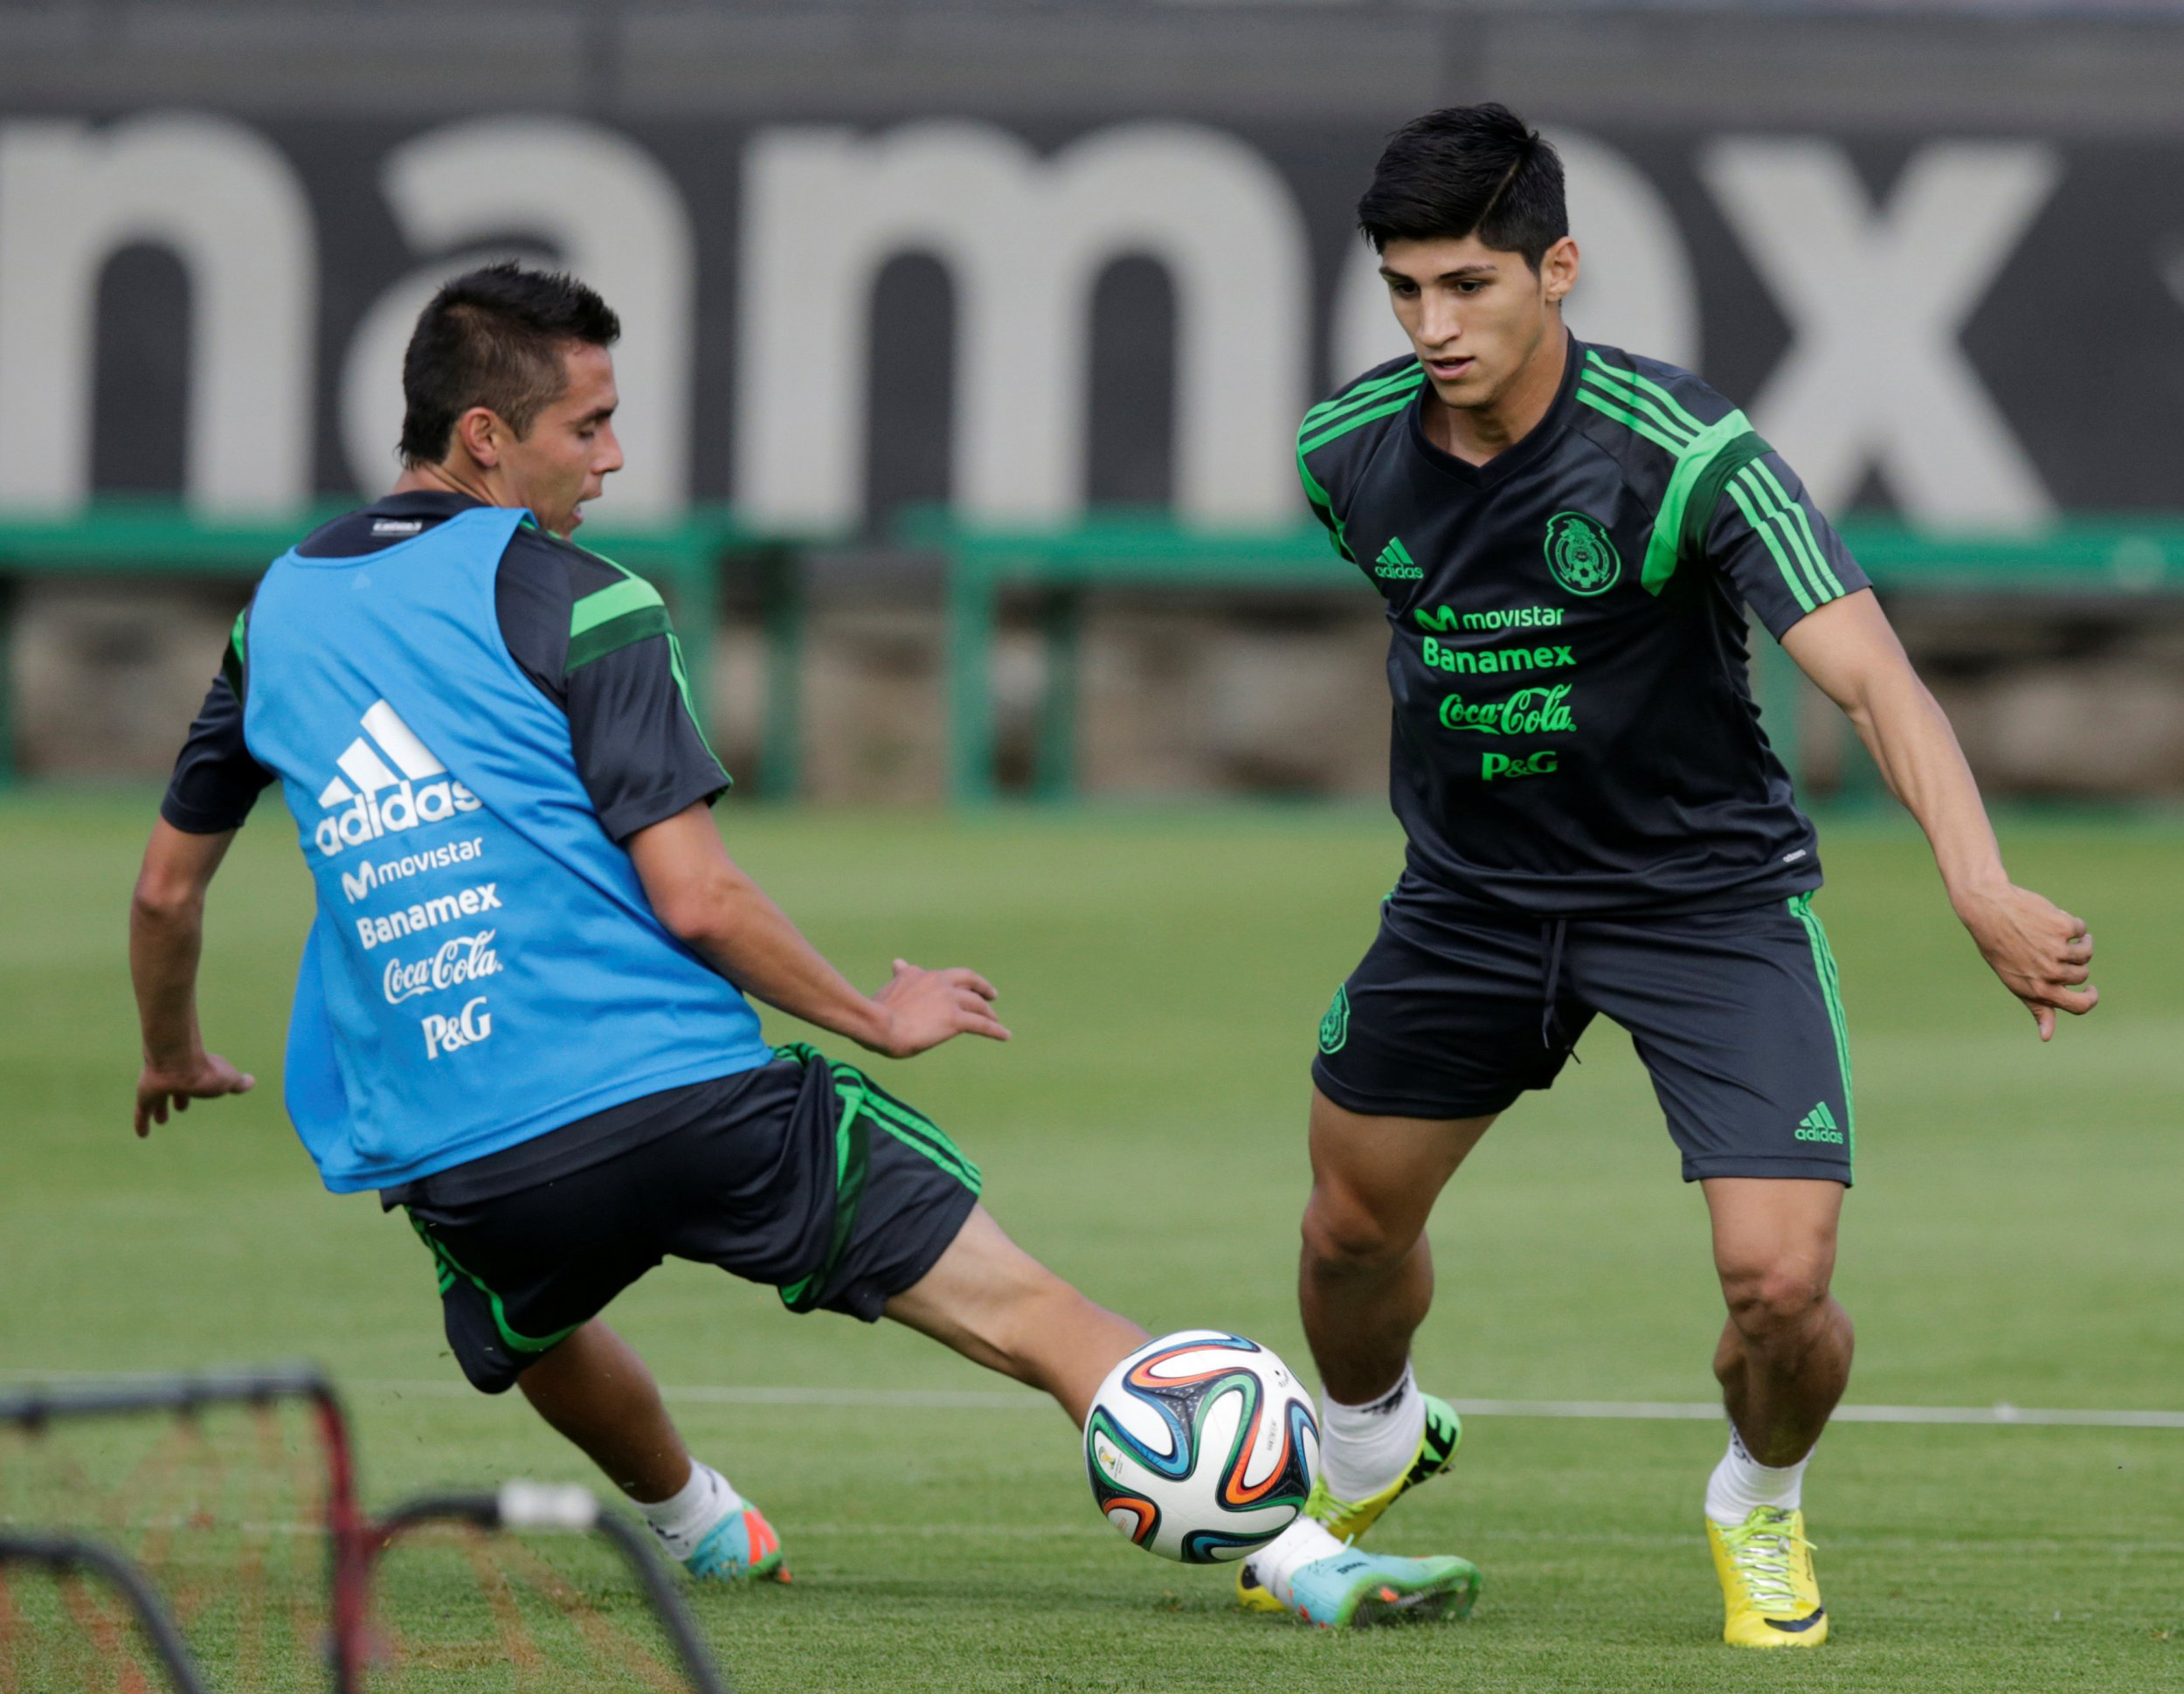 Mexico striker Alan Pulido dribbles past teammate.